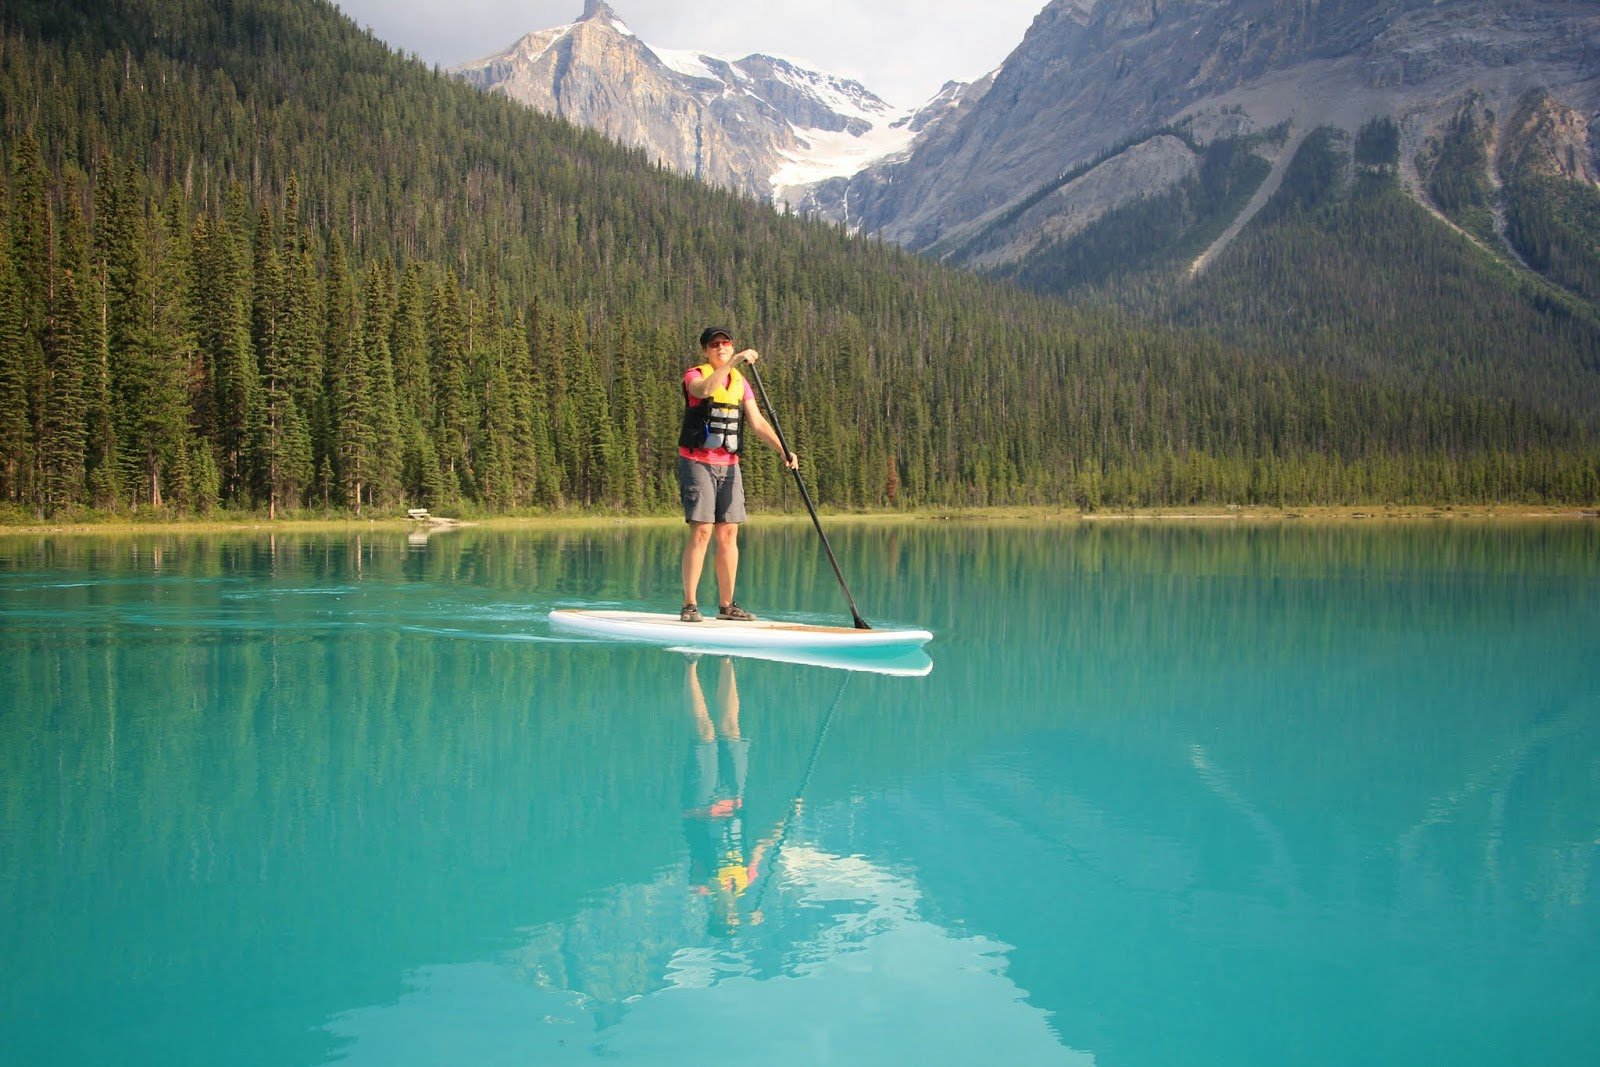 8 Paddle Adventures in National Parks recommendations